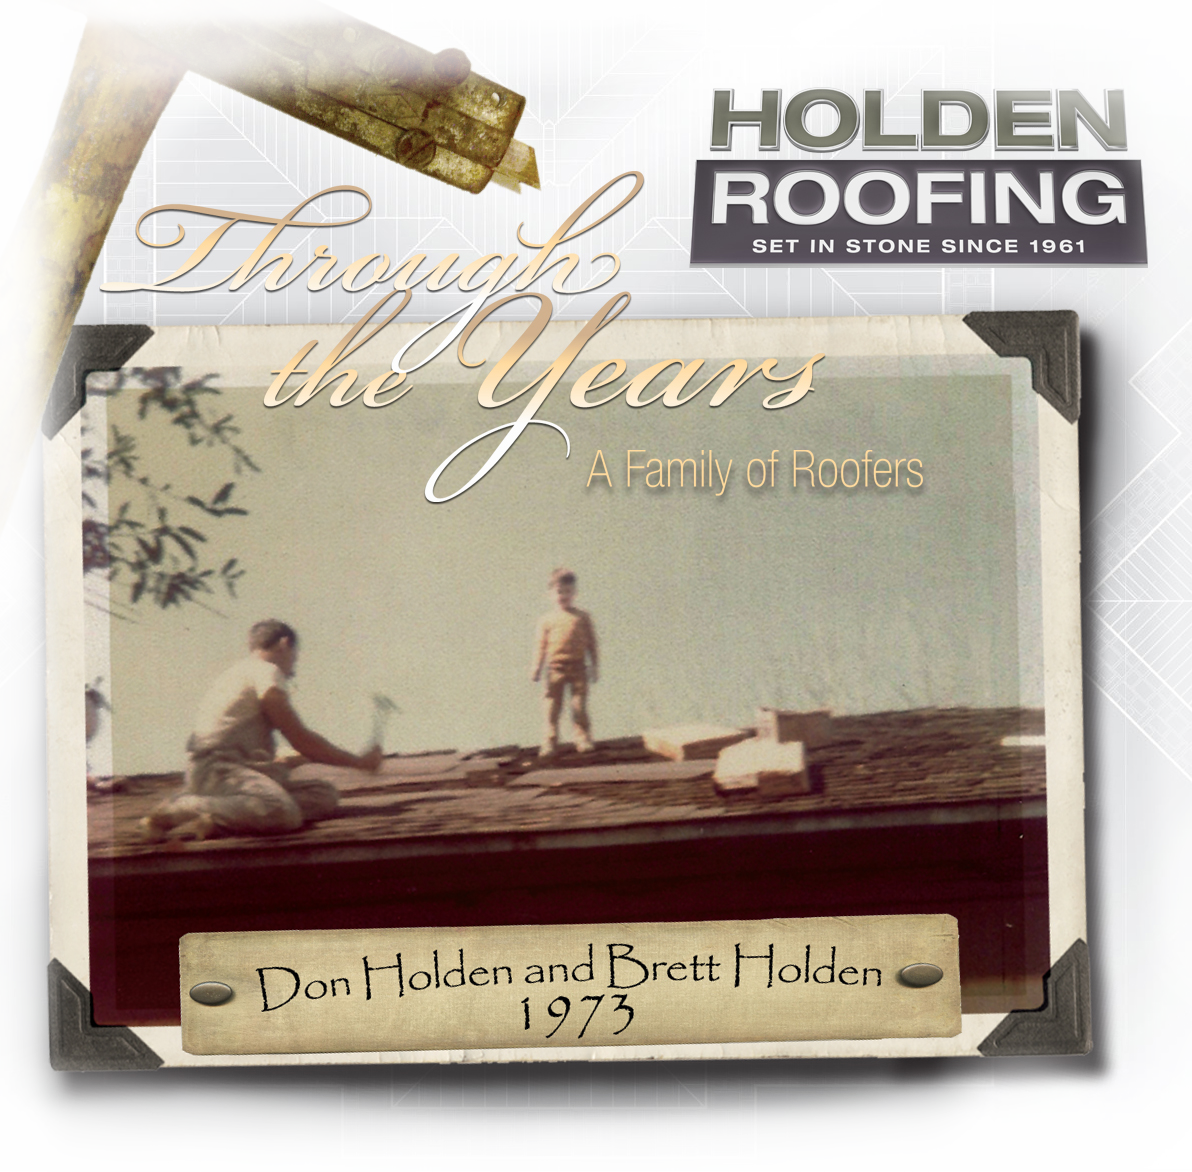 Holden Roofing Through the Years